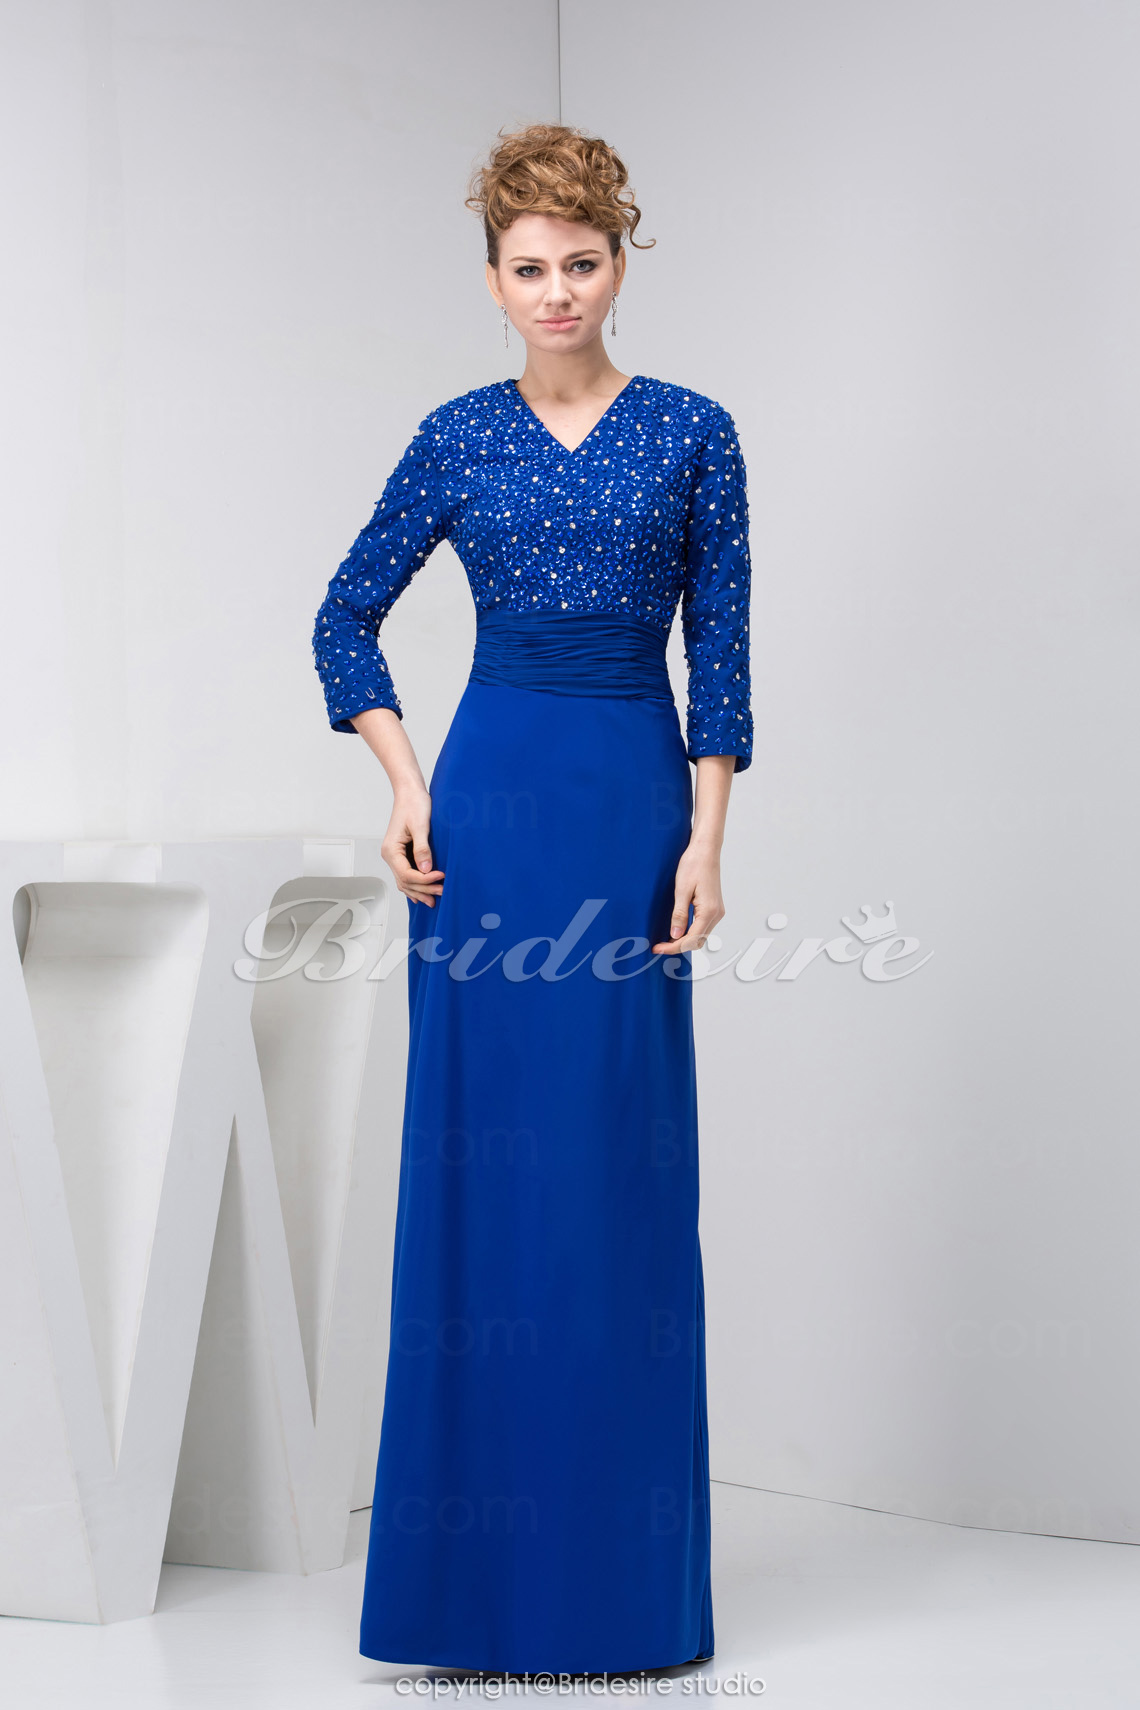 Sheath/Column V-neck Floor-length 3/4 Length Sleeve Stretch Satin Mother of the Bride Dress